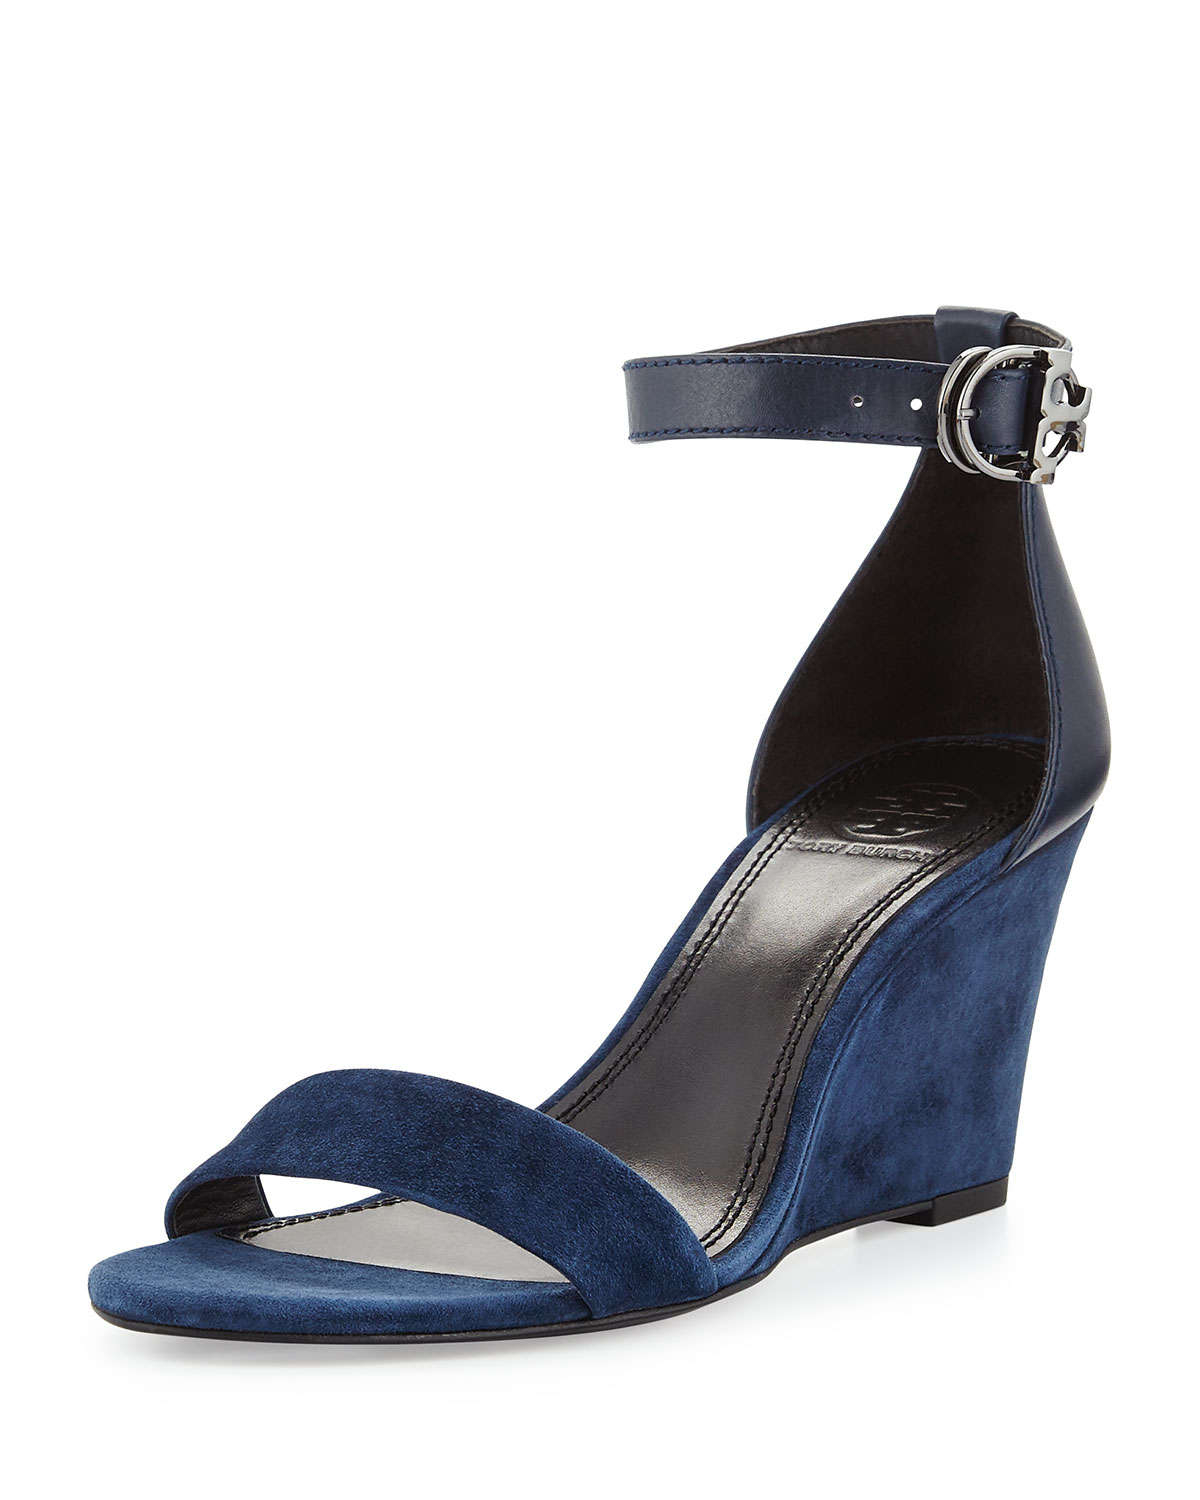 4e416b25889833 Lyst - Tory Burch Thames Suede Wedge Sandals in Blue